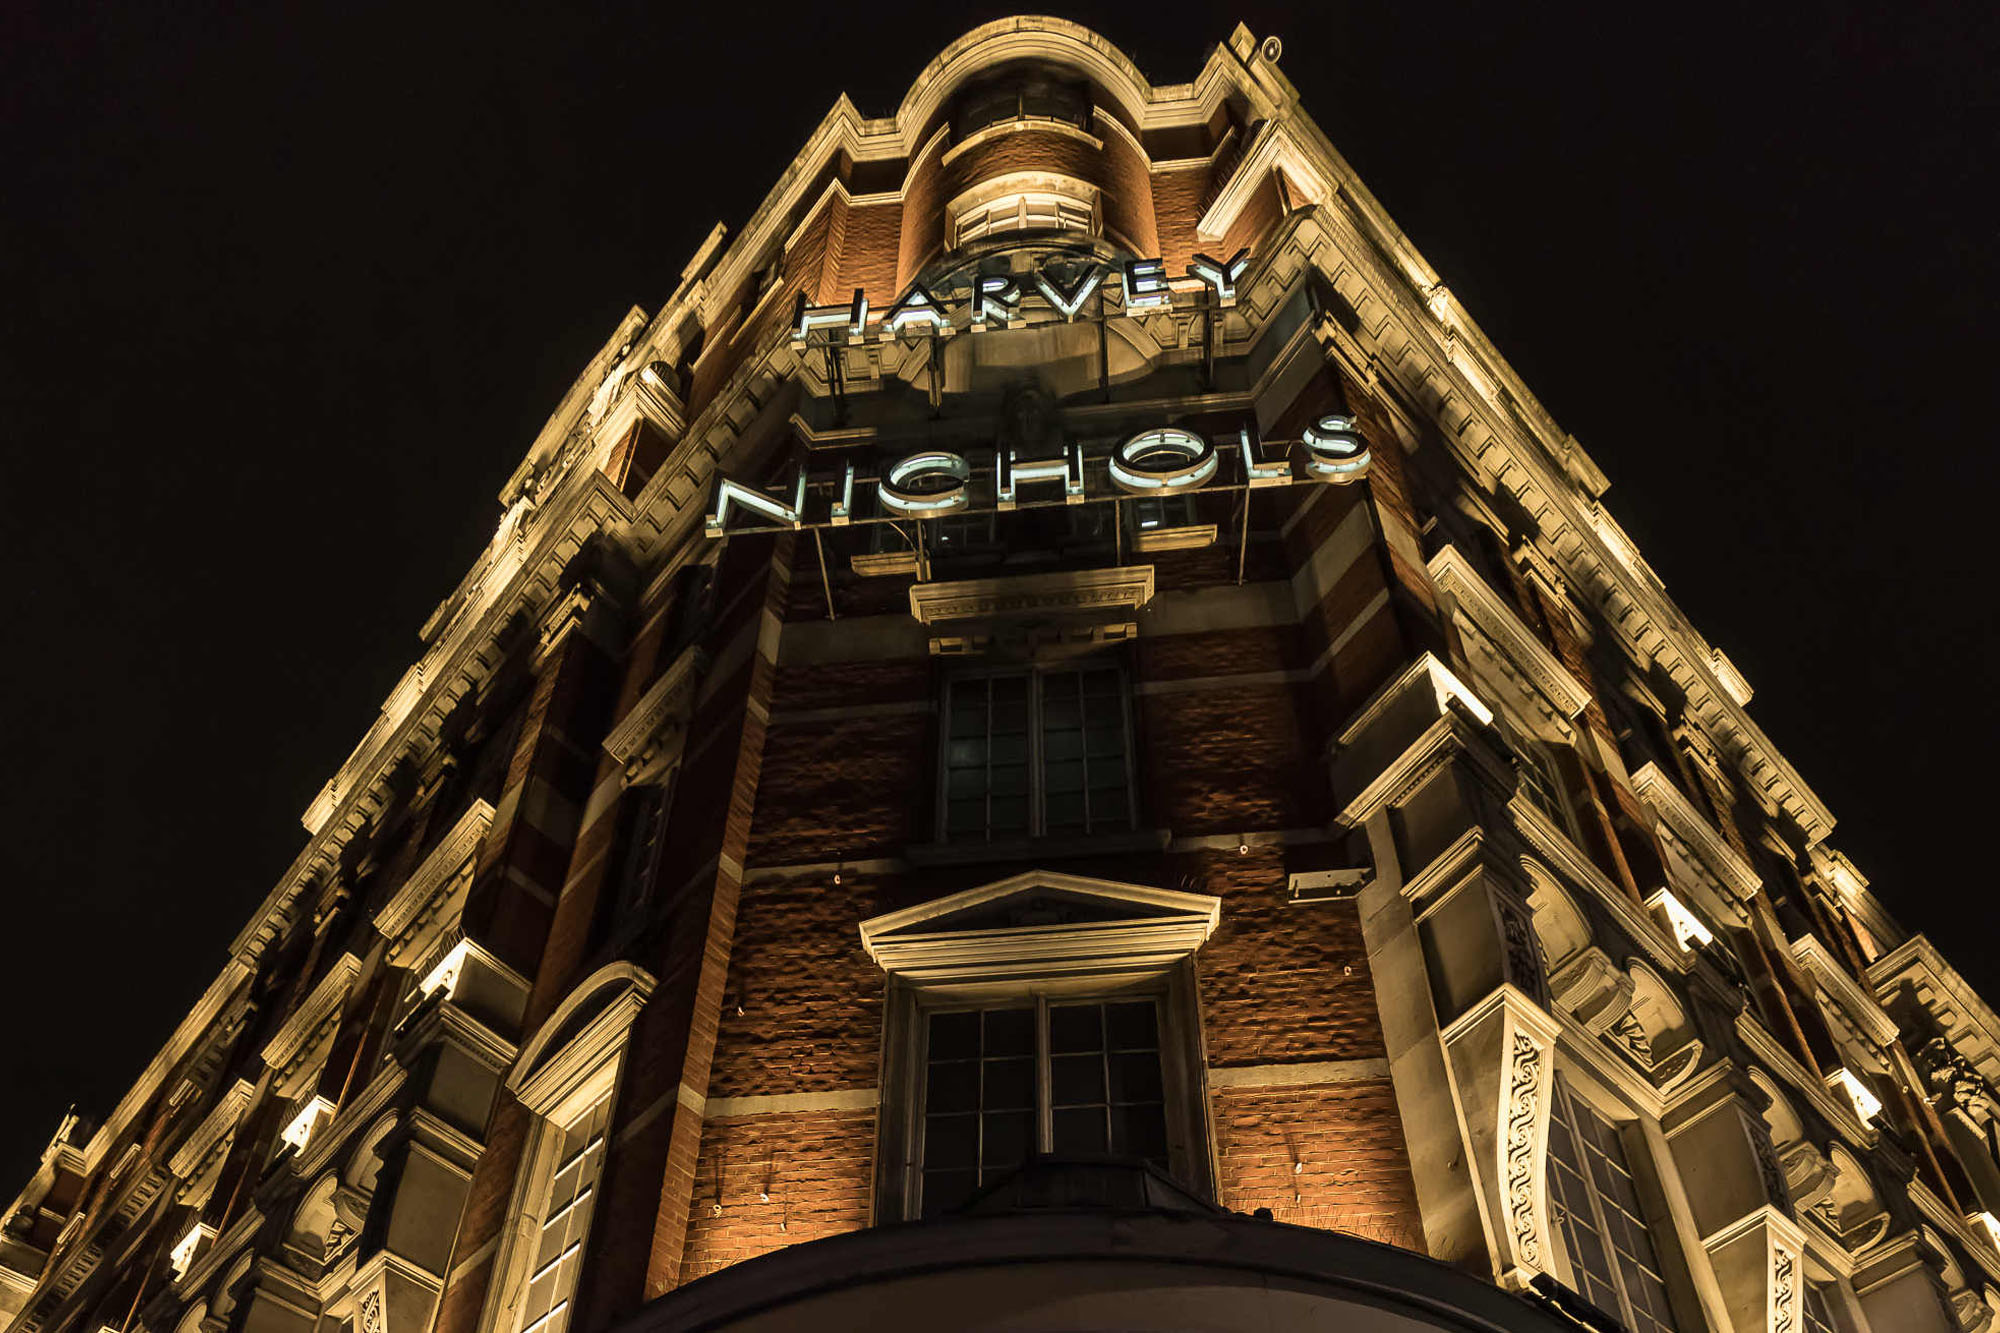 Harvey Nichols London